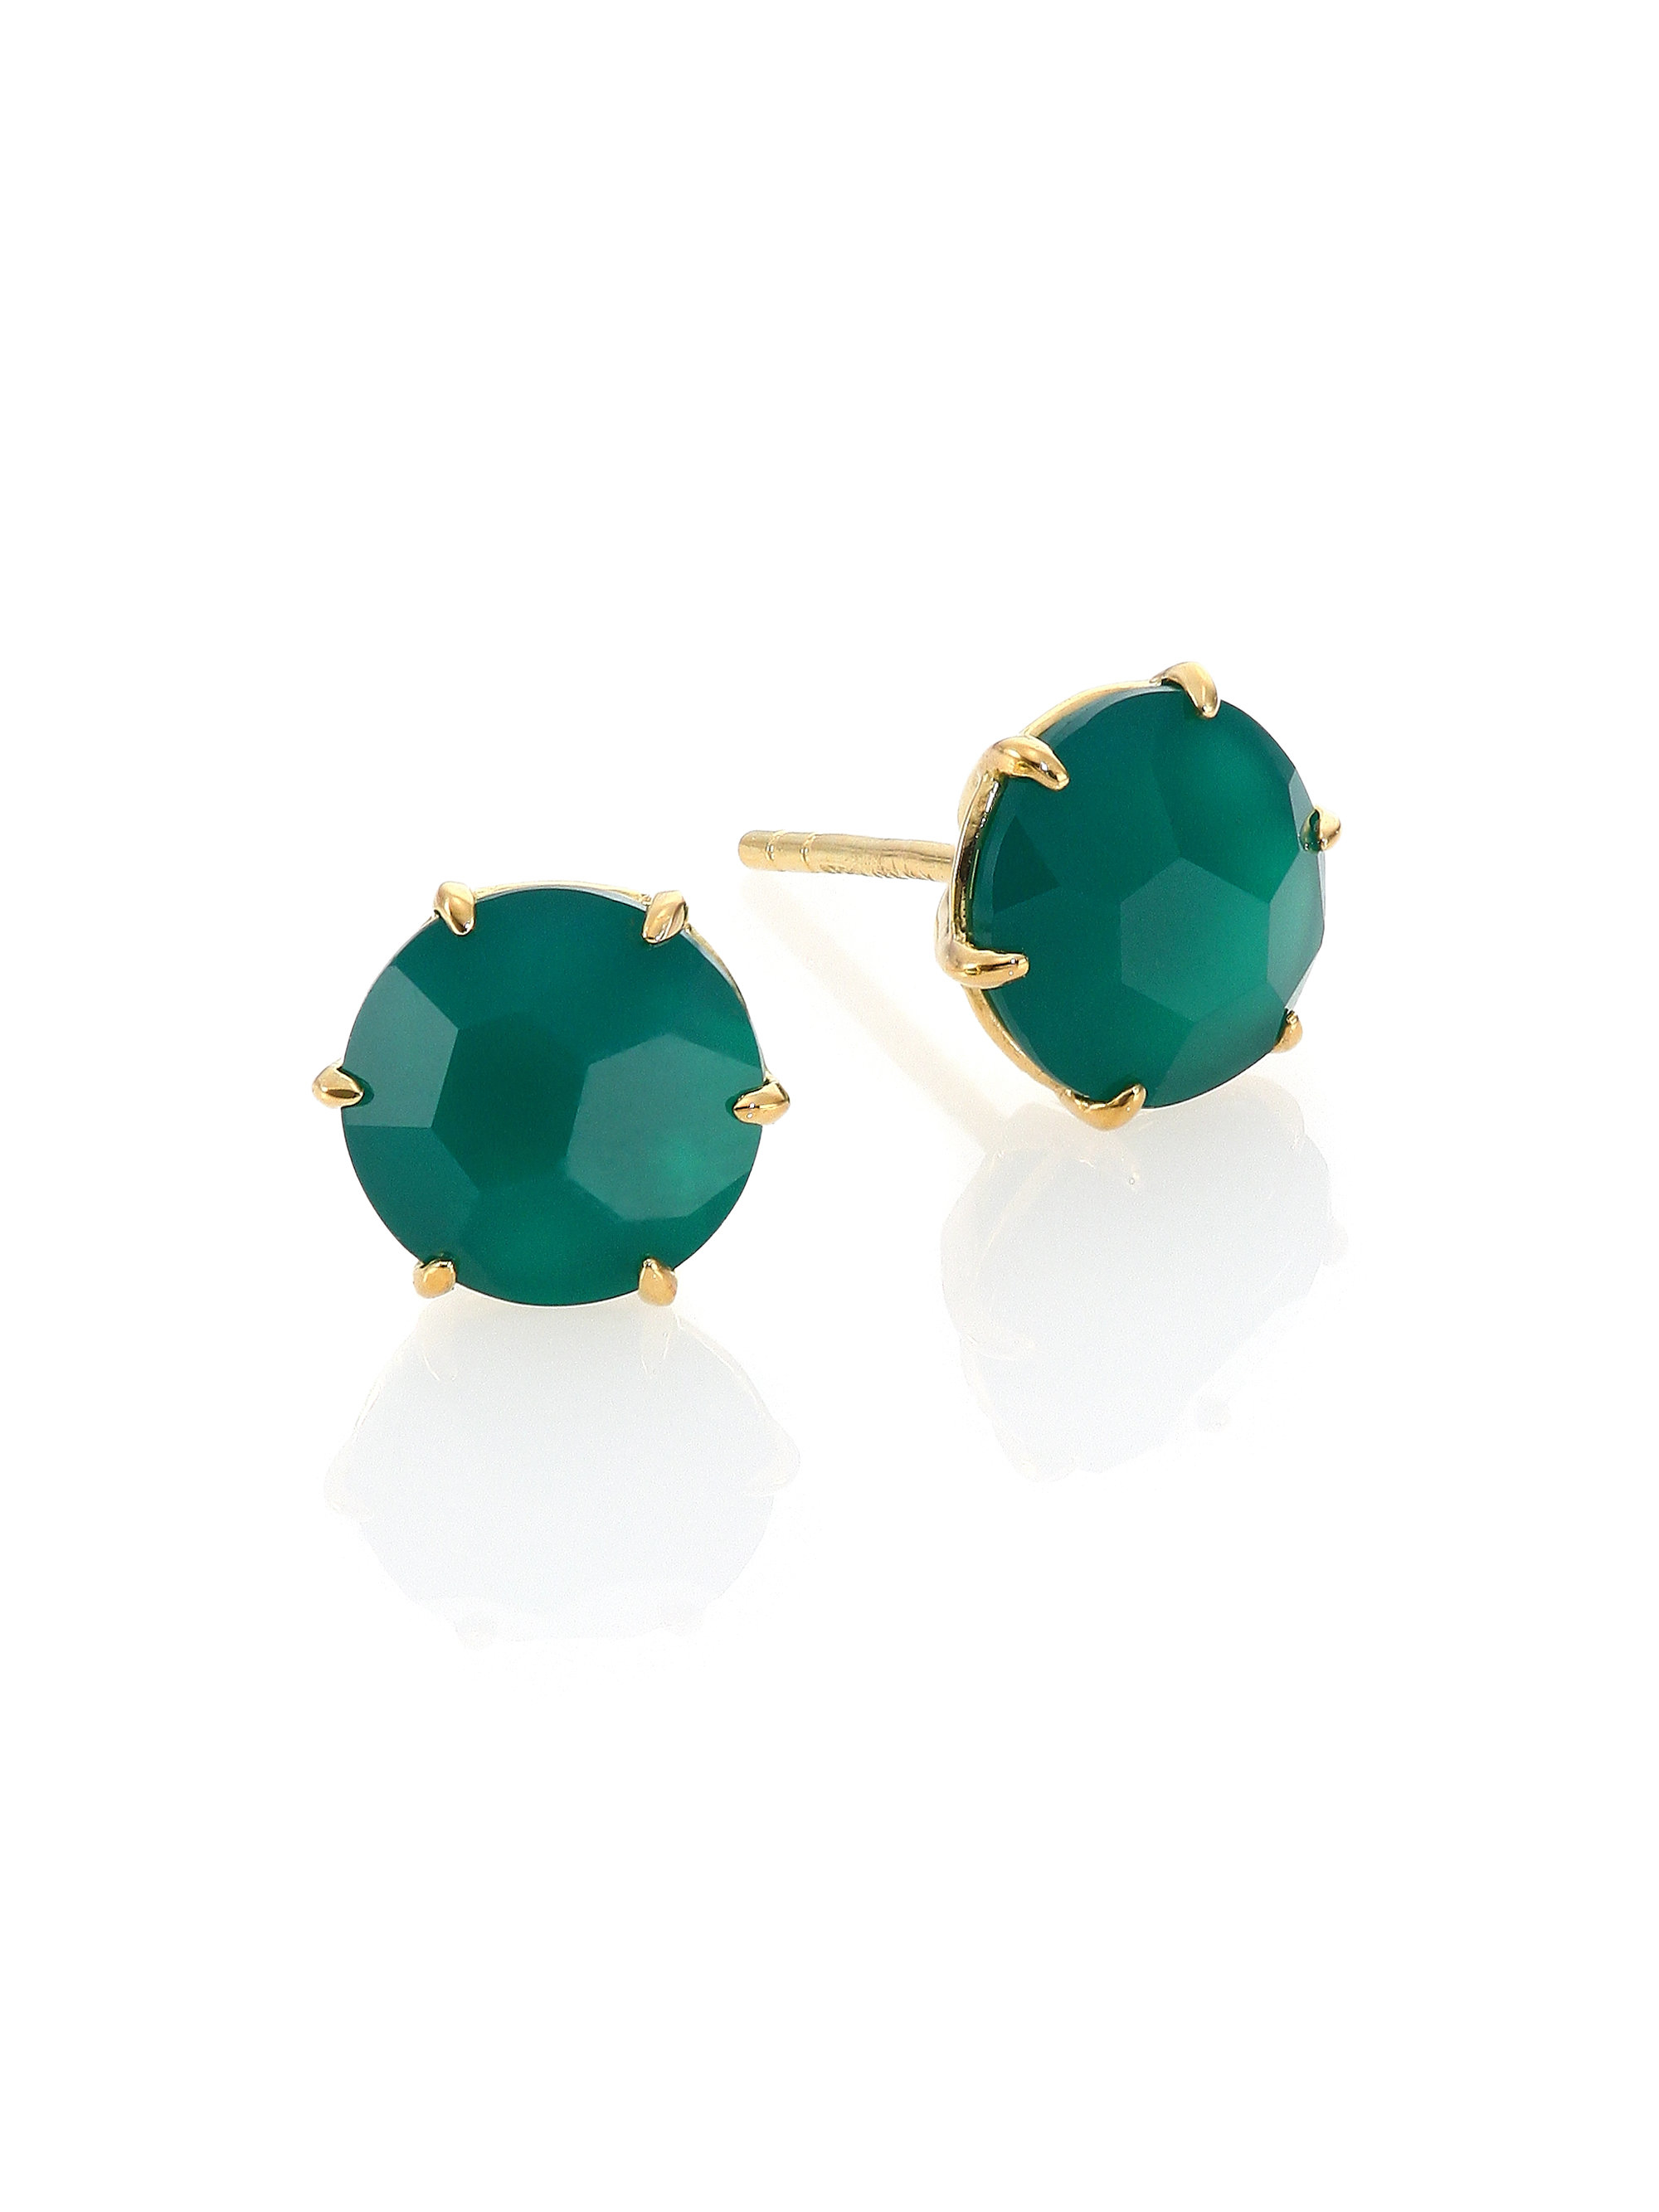 Earrings with agate. Green agate. Gold and silver earrings with agate